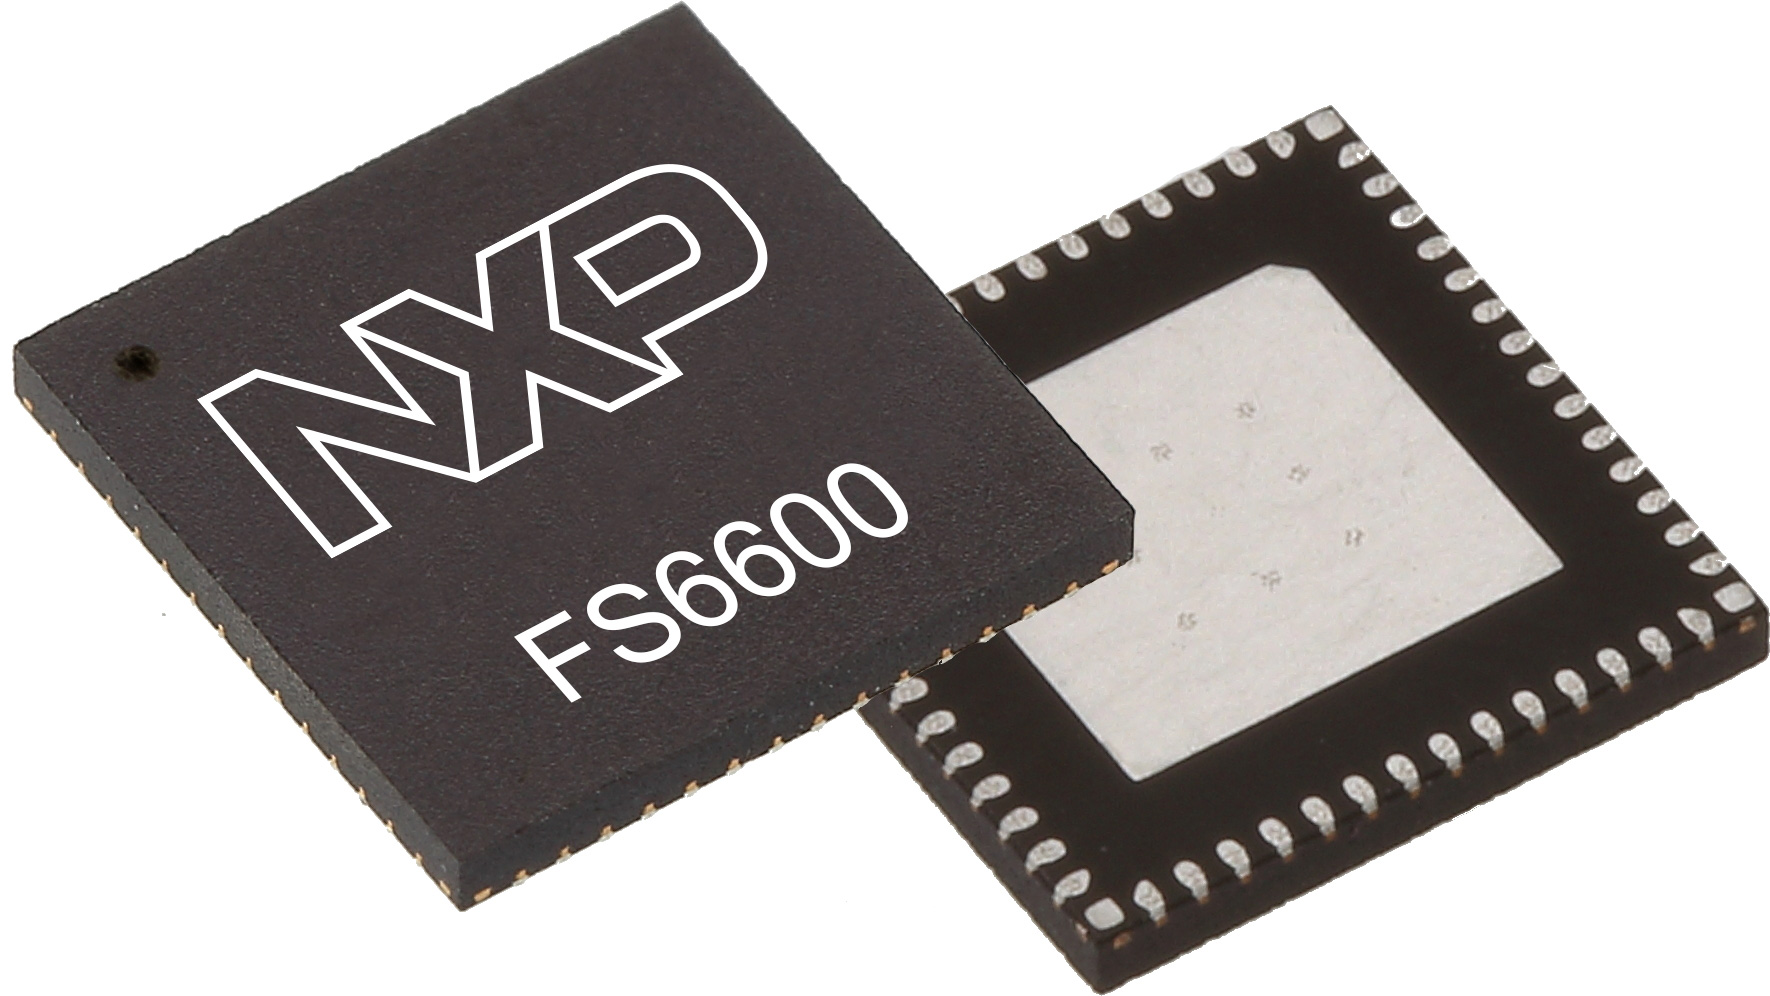 FS6600 Safety SBC for S32S2 Microcontroller, fit for ASIL D